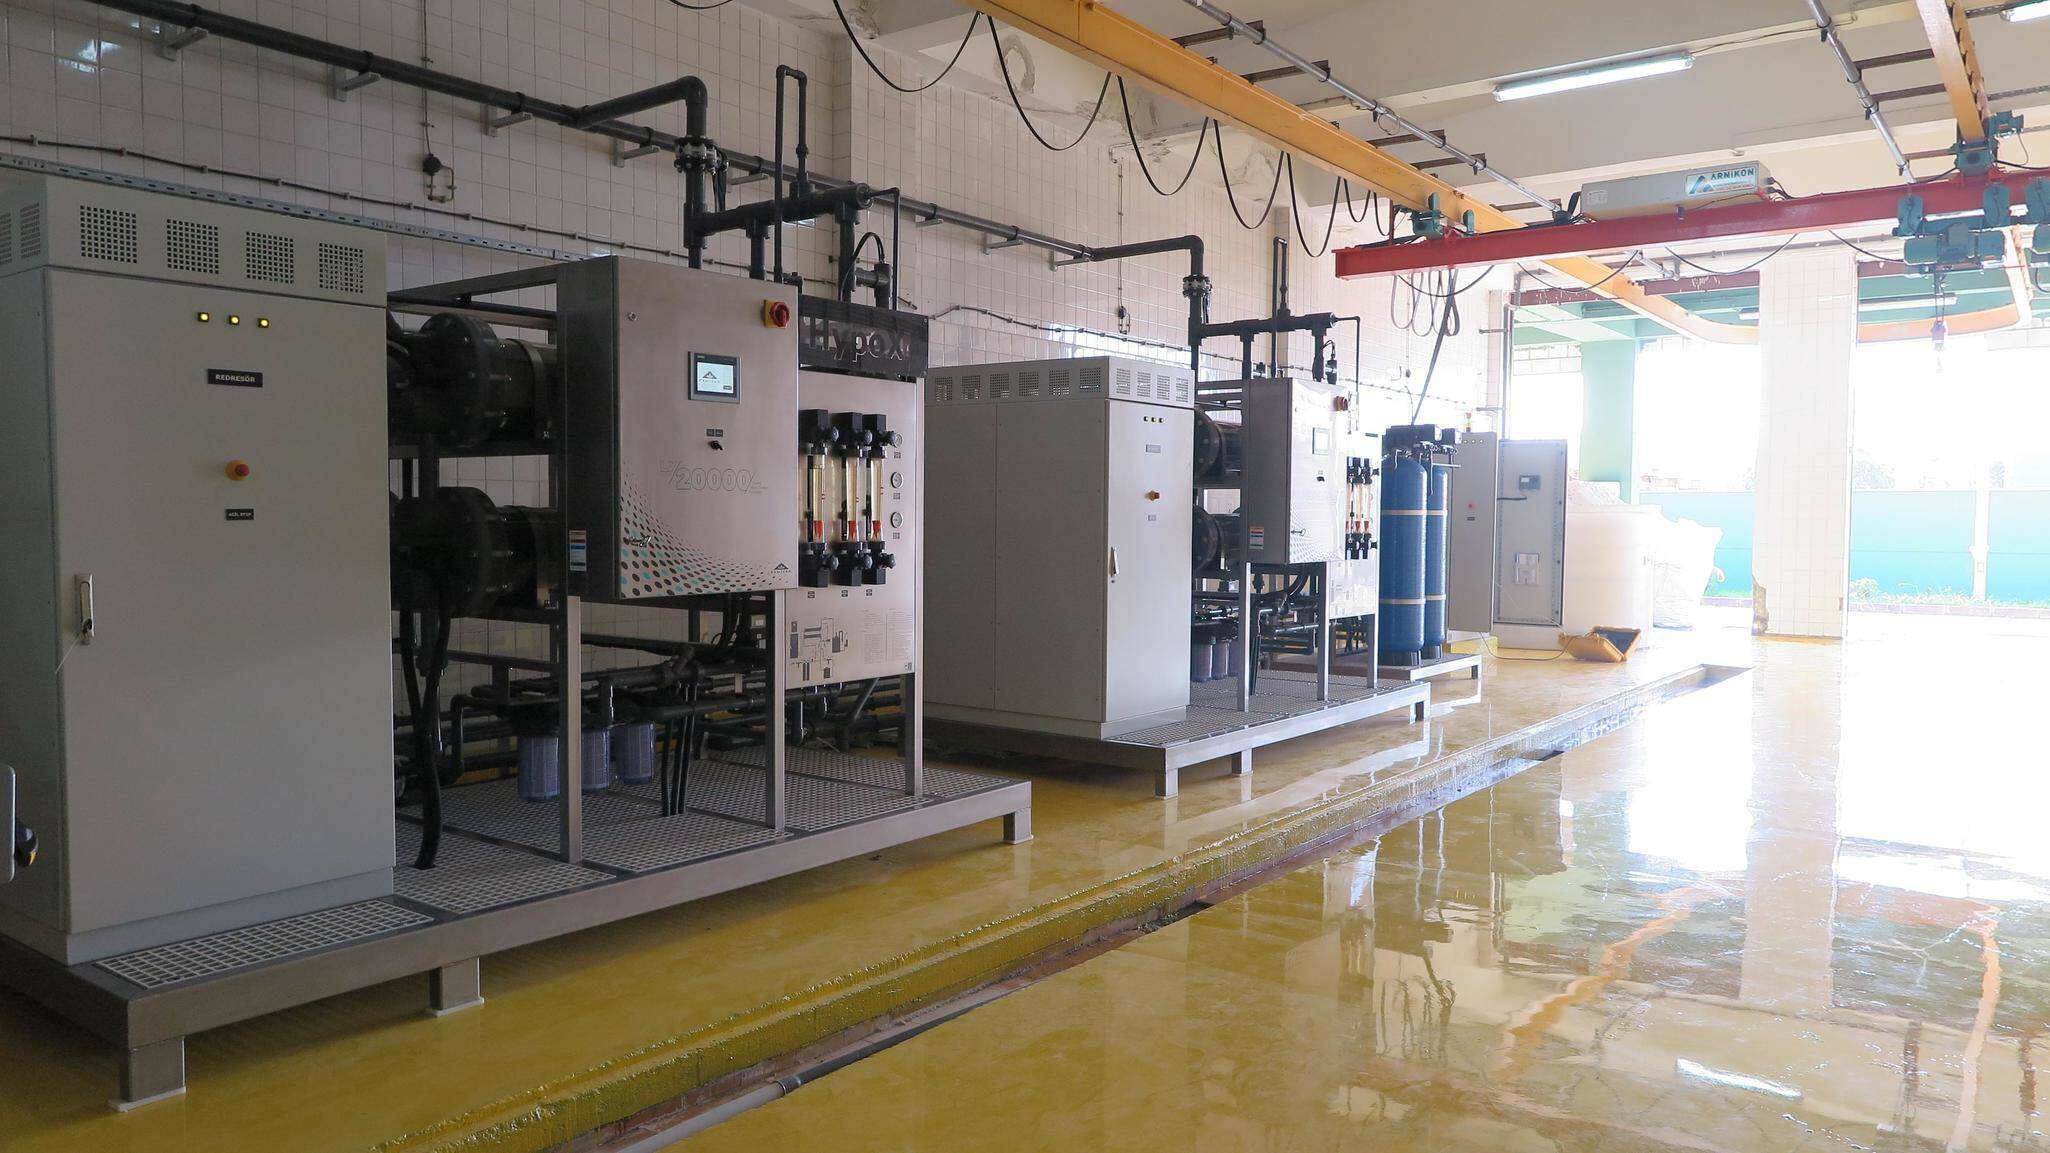 Gallery image 0 - HypoX® On-site Mix Oxidant Generator for BUSKİ water treatment plant with capacity of 40kg/h Chlorine production. Both pre-chlorination and post-chlorination requirements are being covered by HypoX® unit.